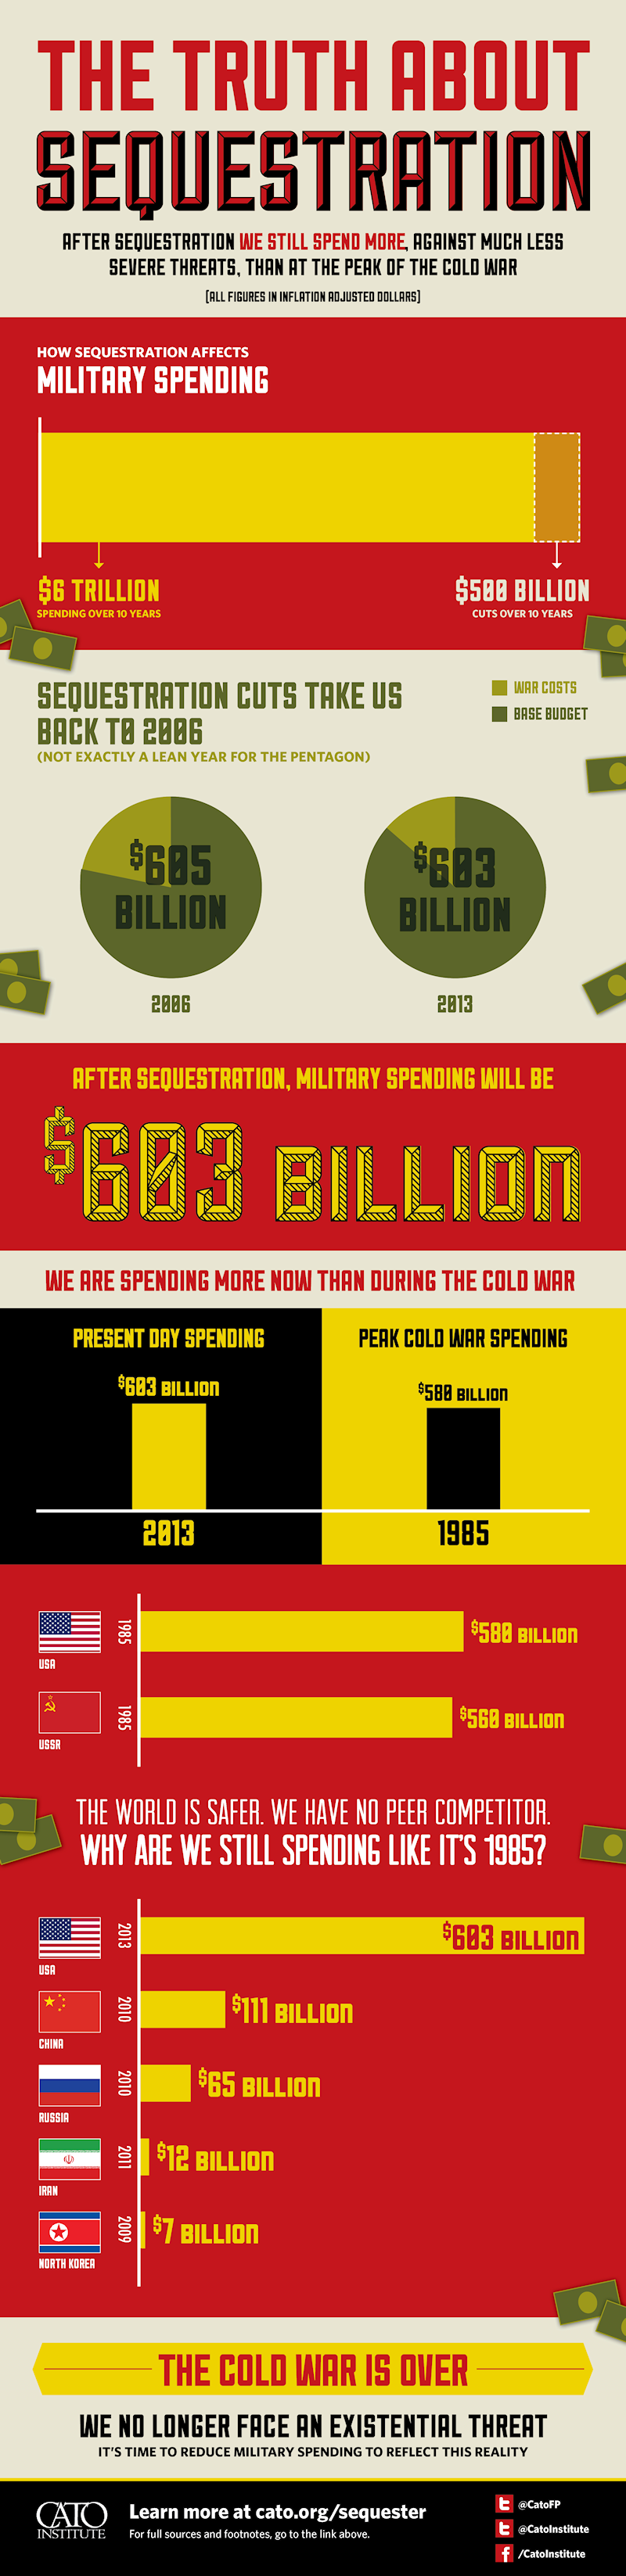 cato sequestration infographic